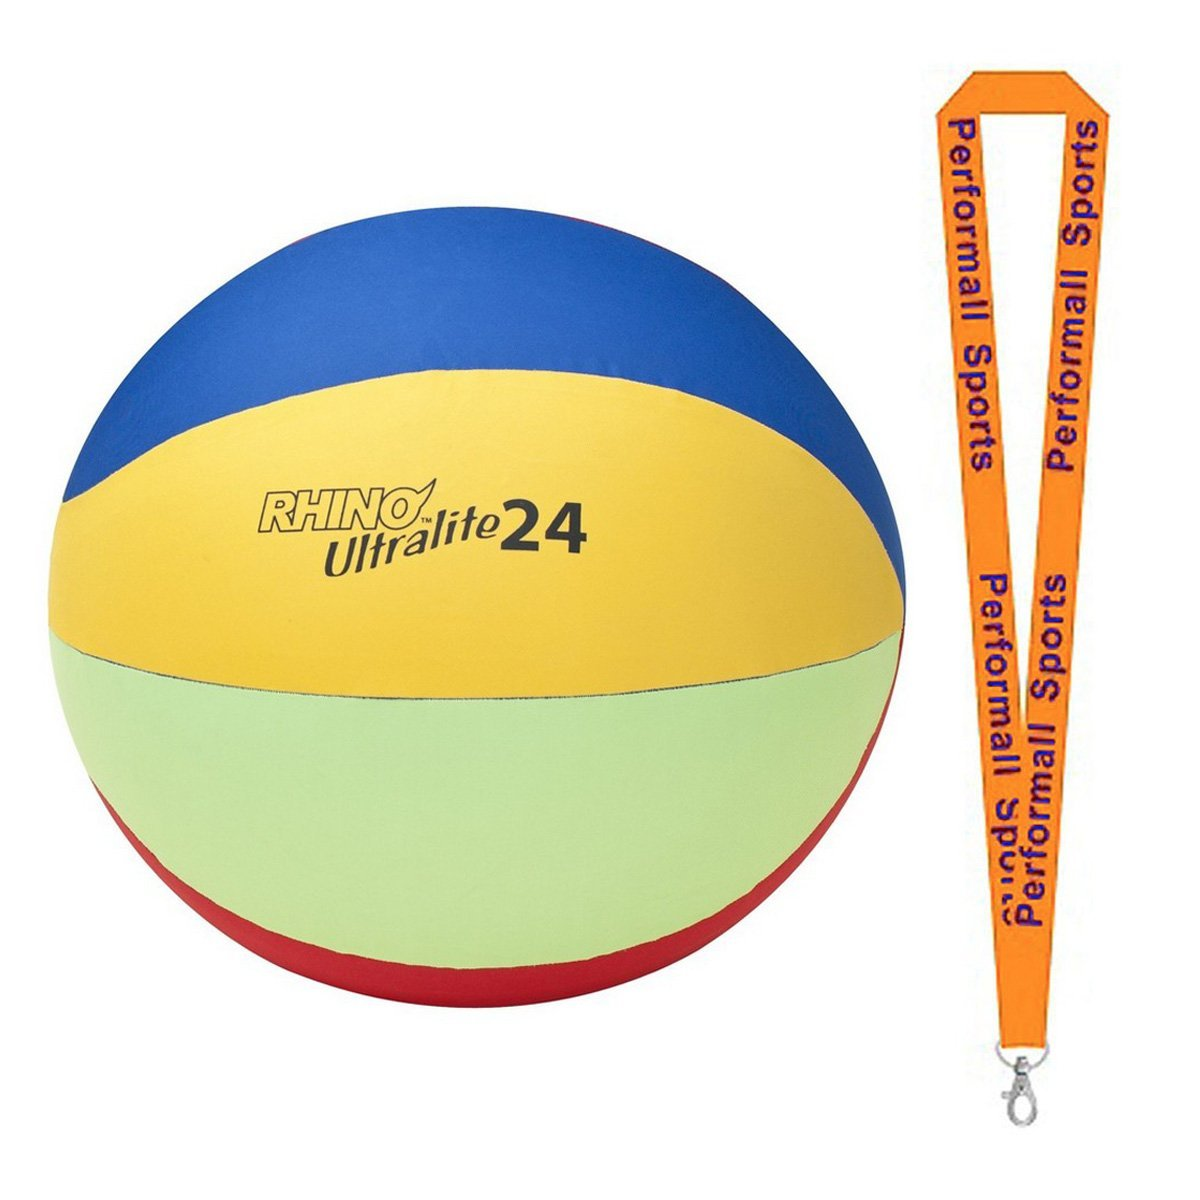 Champion Sports Bundle: Rhino Ultra-Lite Cage Ball Set Assorted Colors and Sizes with 1 Performall Lanyard